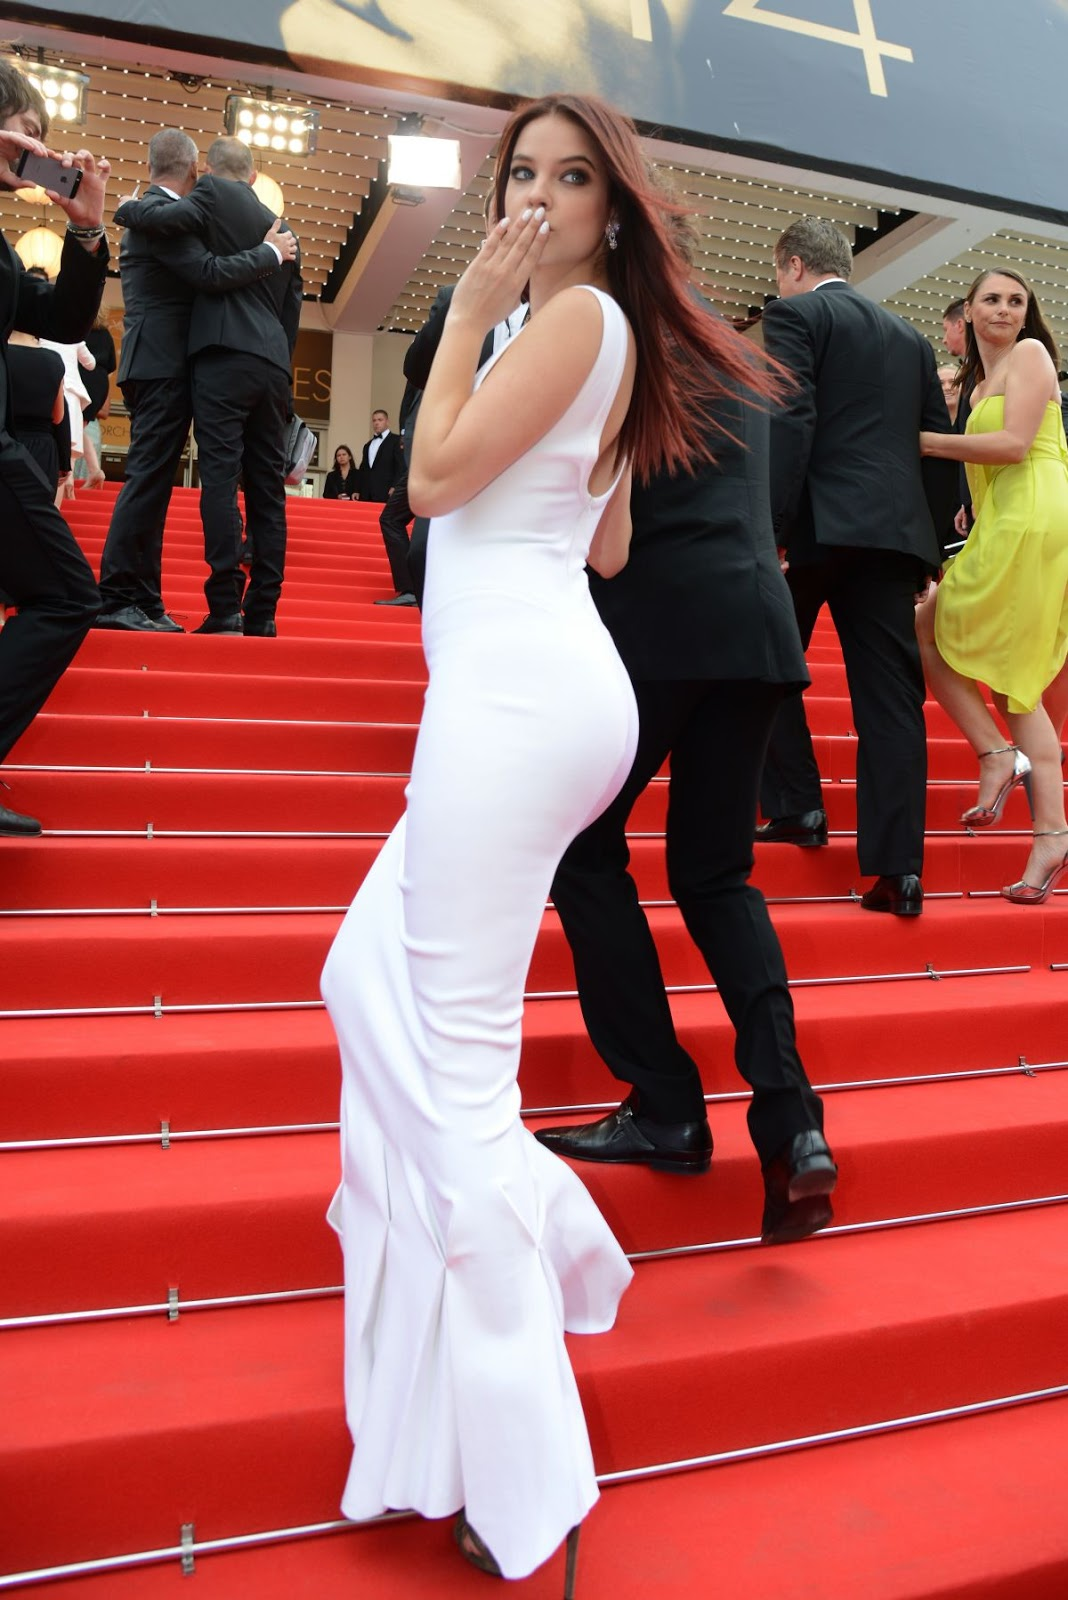 Full HQ Hot Photos & Sexy Wallpapers of Barbara Palvin At The Search Premiere At Cannes Film Festival